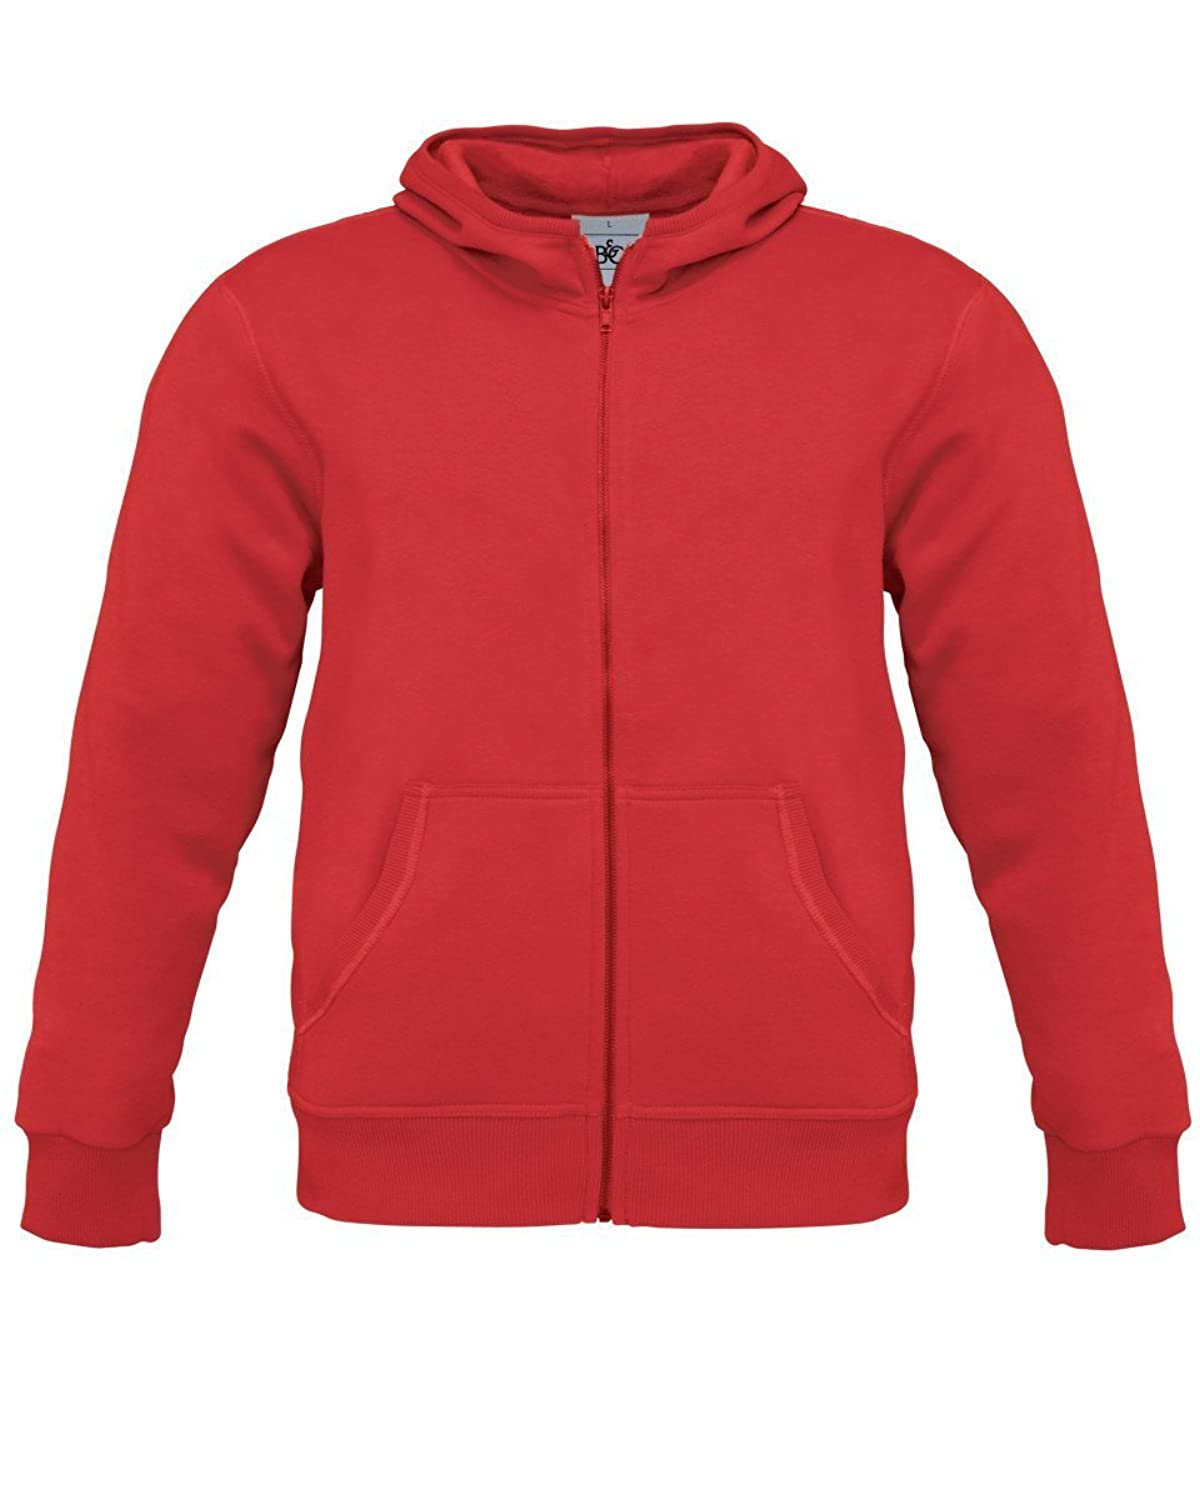 B&C Collection Monster Mens Zip Up Hoodie Hooded Sweatshirt Red 2XL